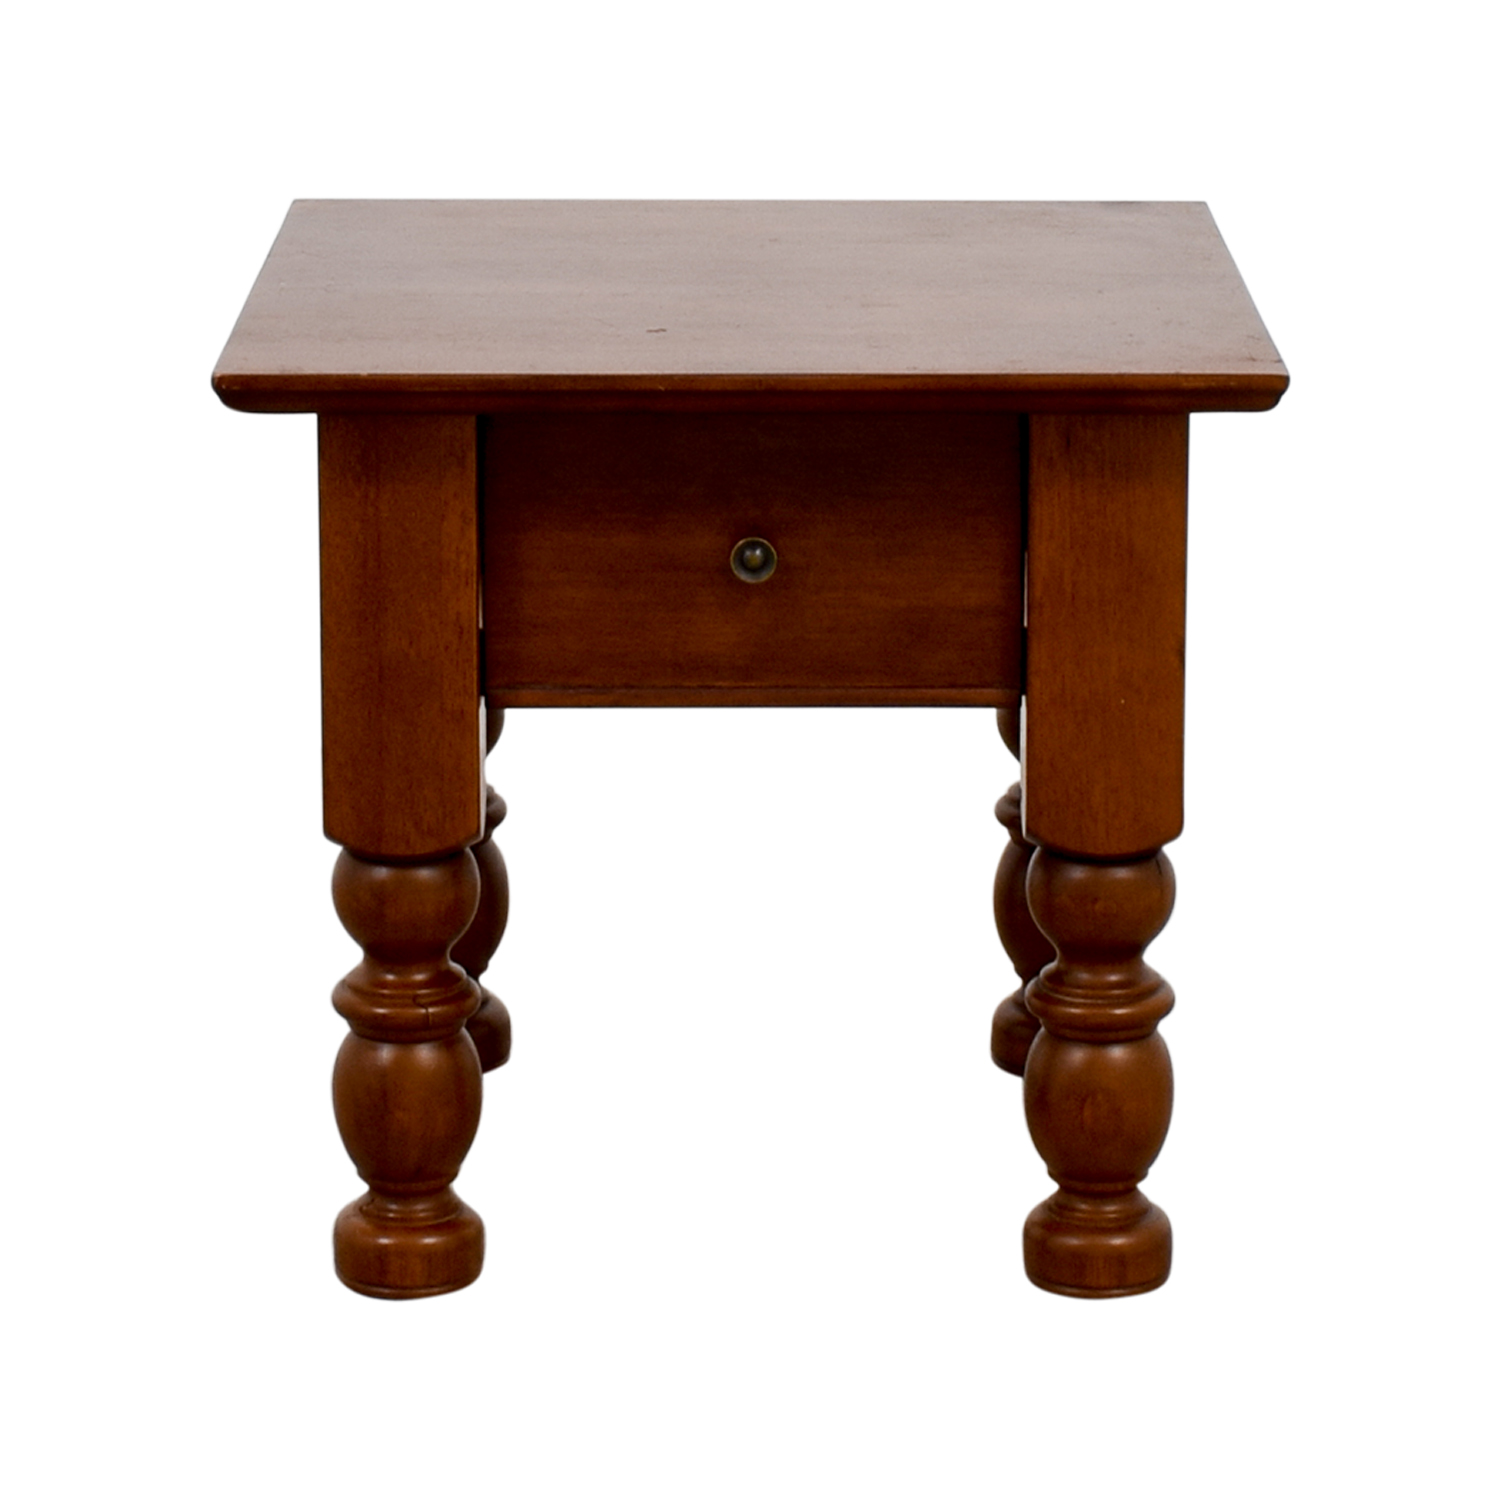 off pottery barn single drawer end table tables accent brown marble coffee night with cabinet and oak floor threshold small furniture large outdoor pool umbrellas tiered wedge